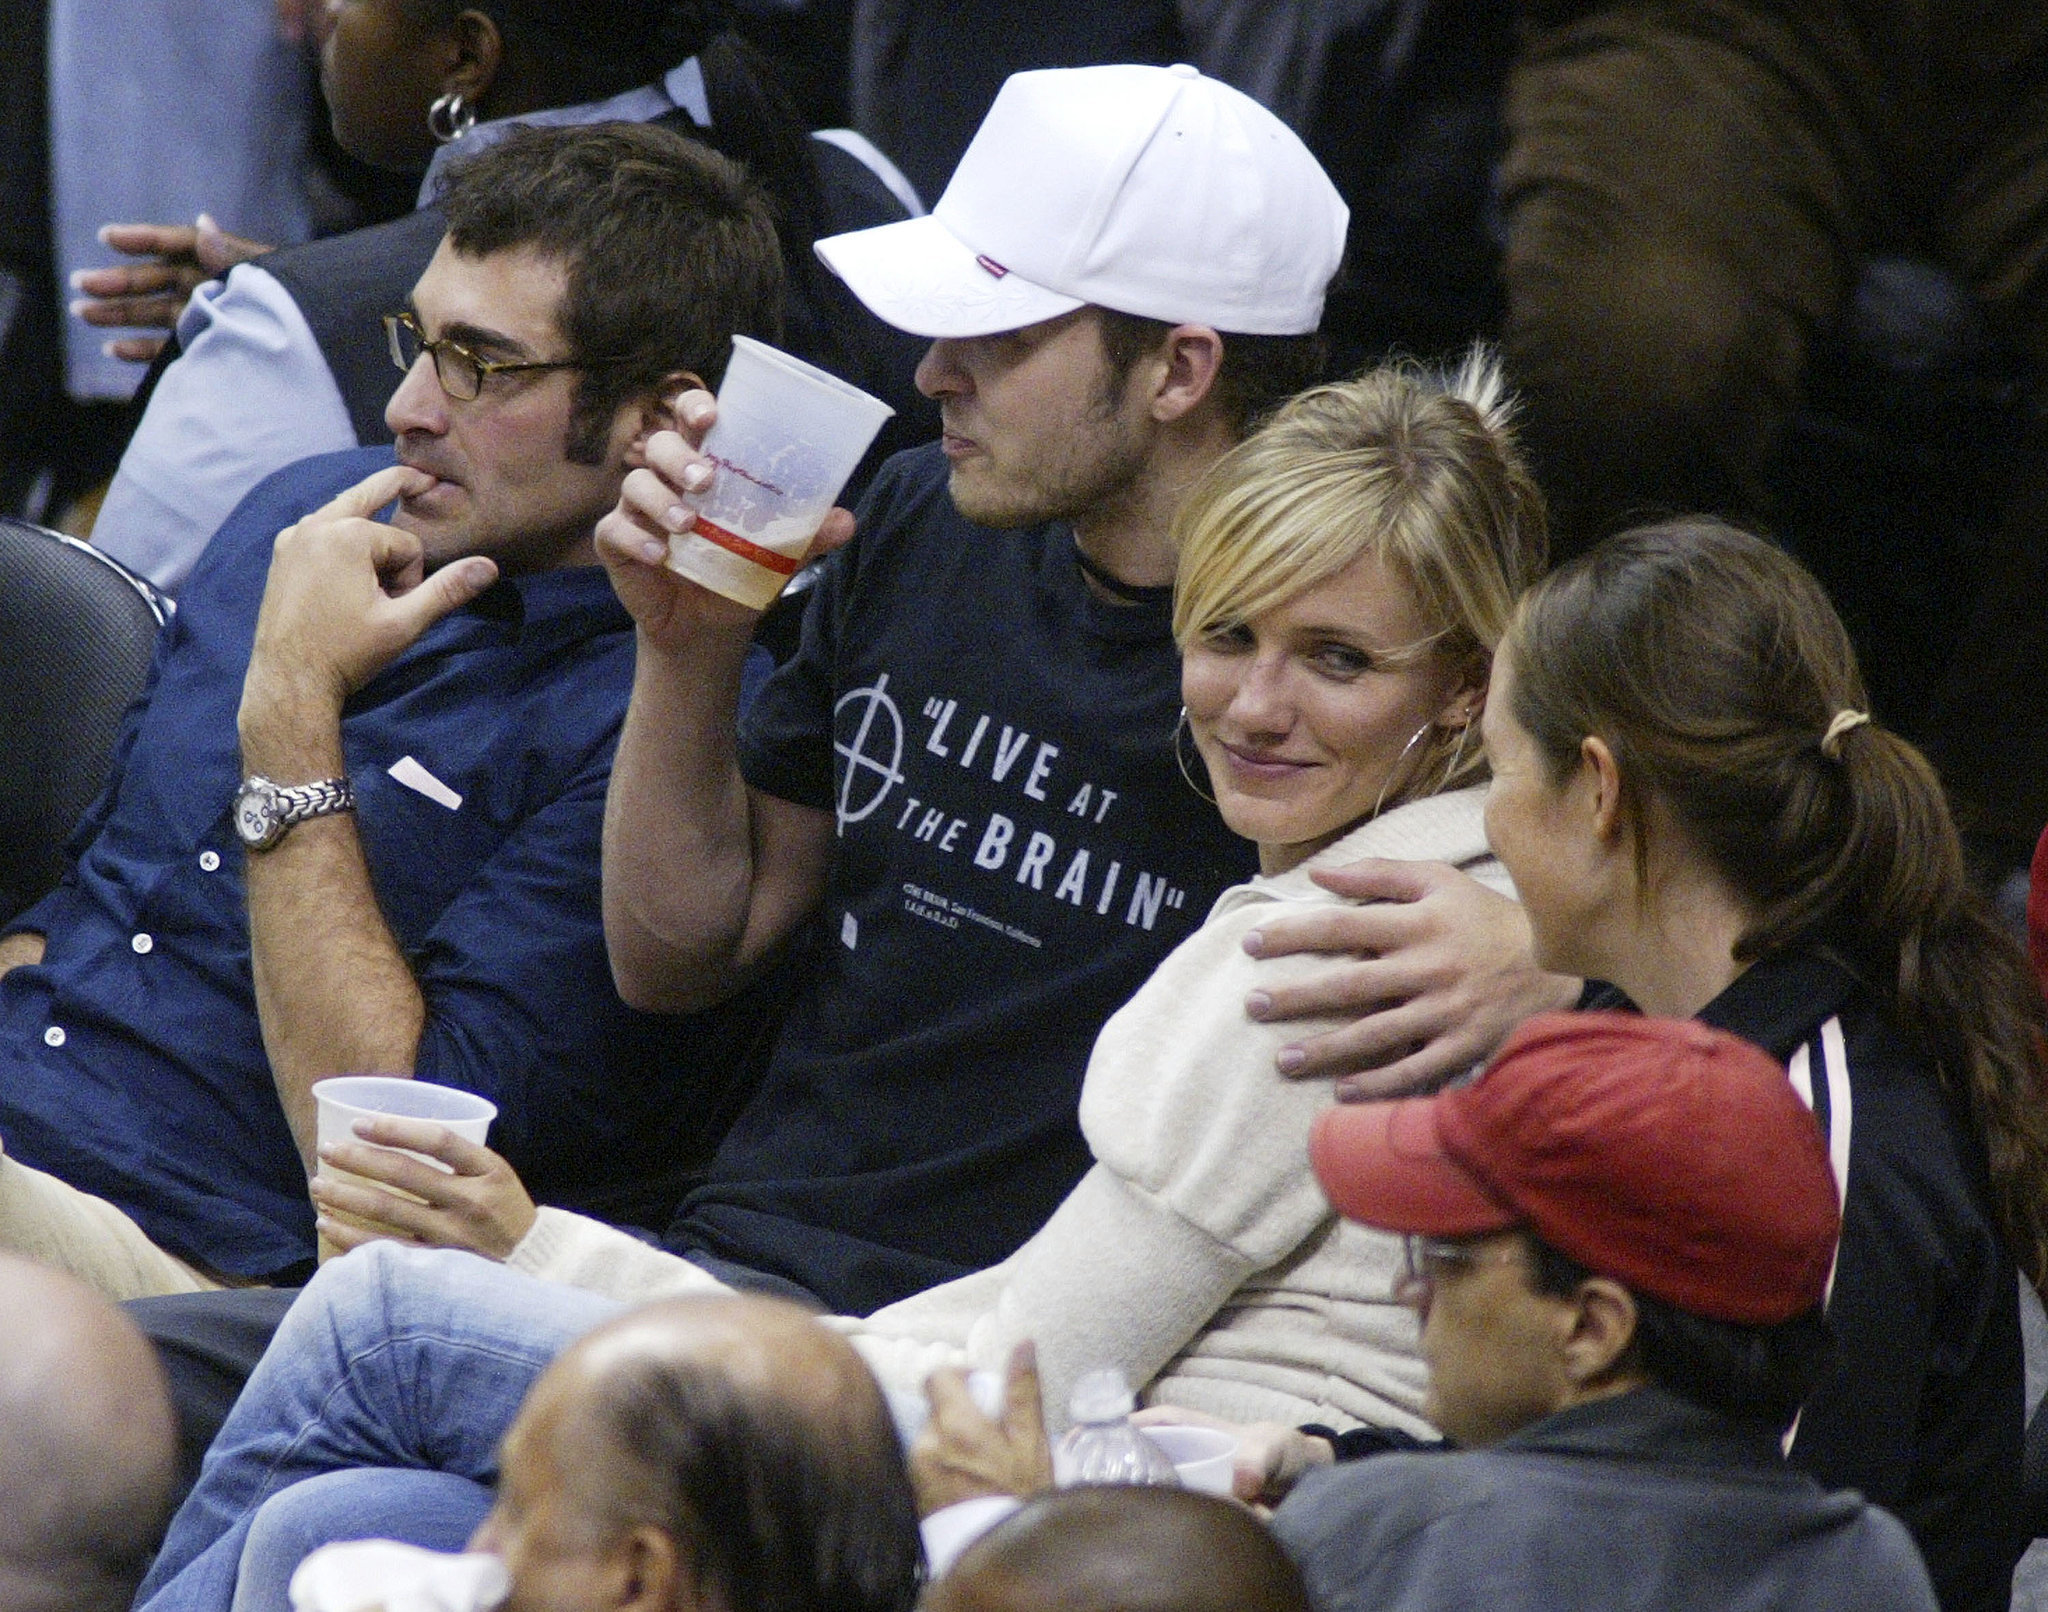 When he cuddled up with <nobrand>Cameron Diaz</nobrand> at a Lakers game.